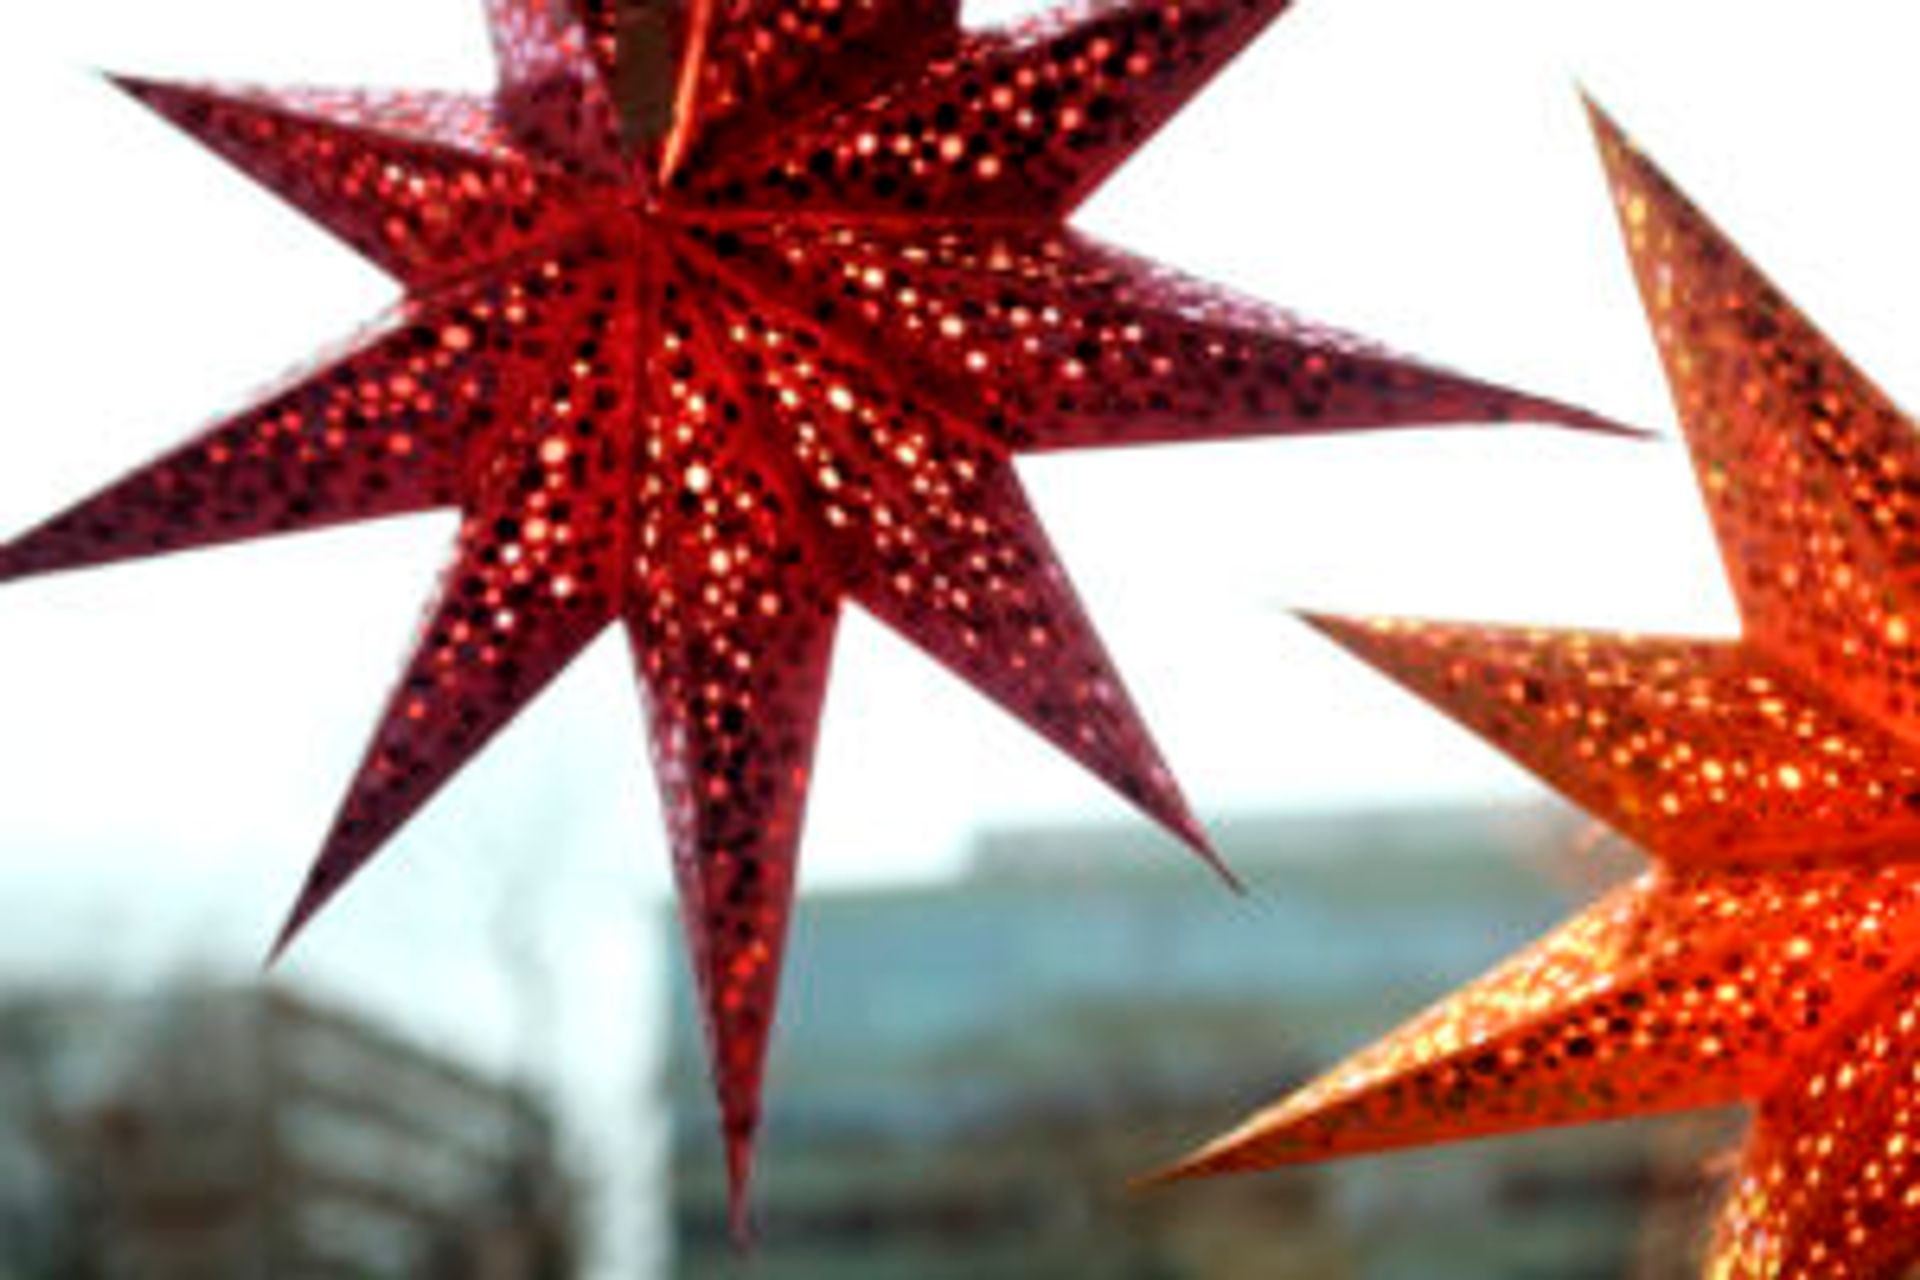 Two red, sparkly paper star decorations hanging in a widow.